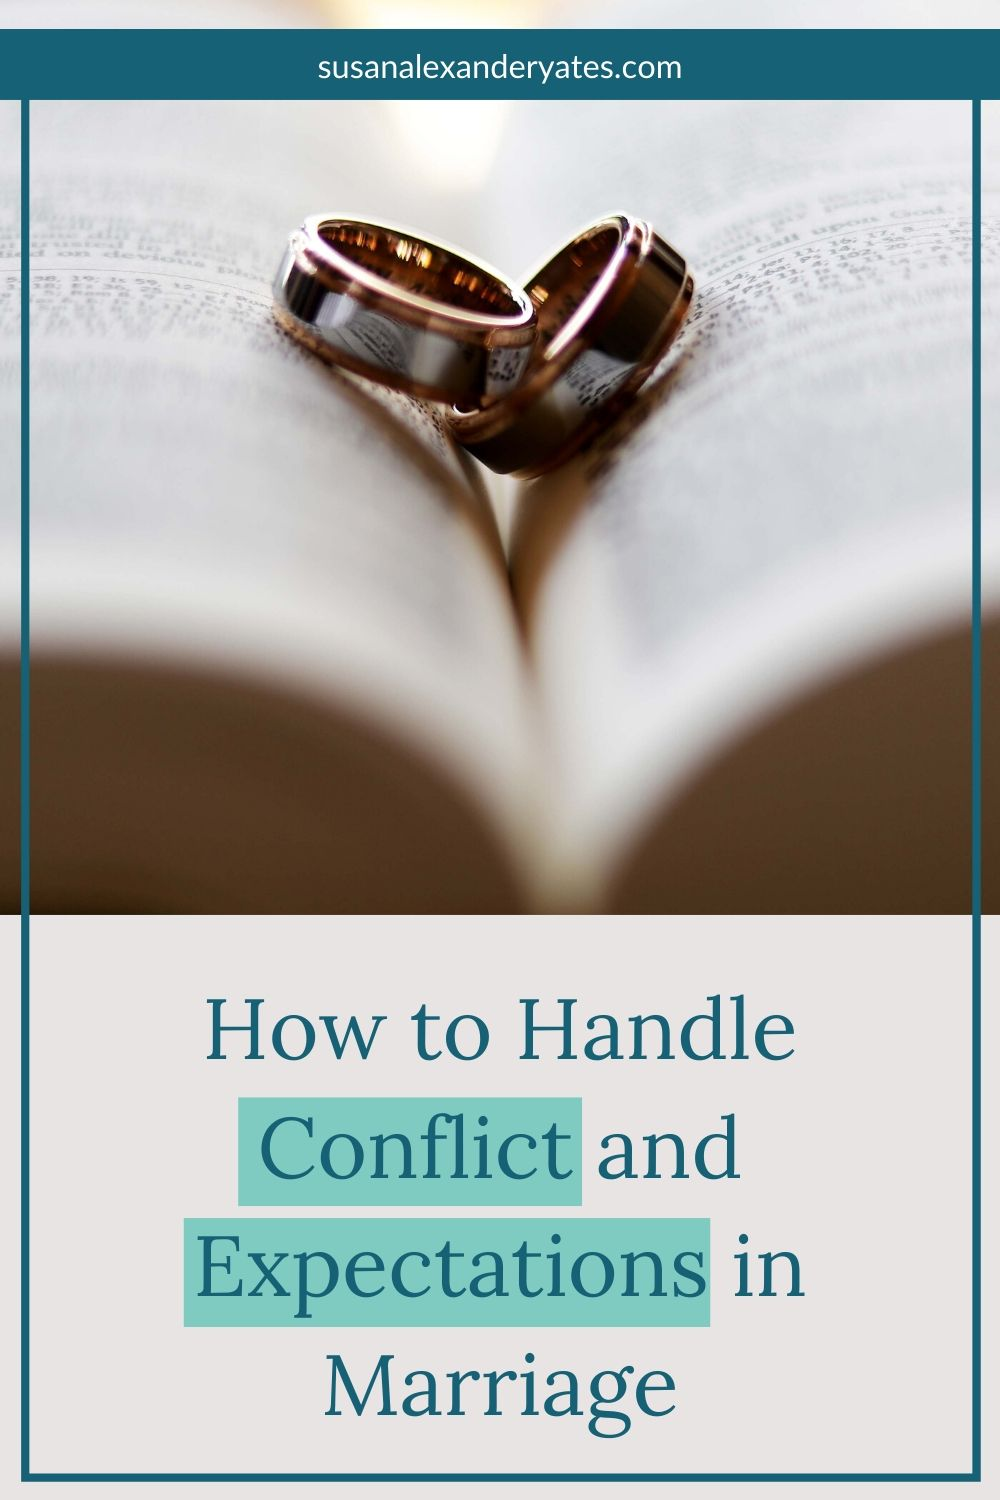 Pinterest image: How to handle conflict and expectations in marriage